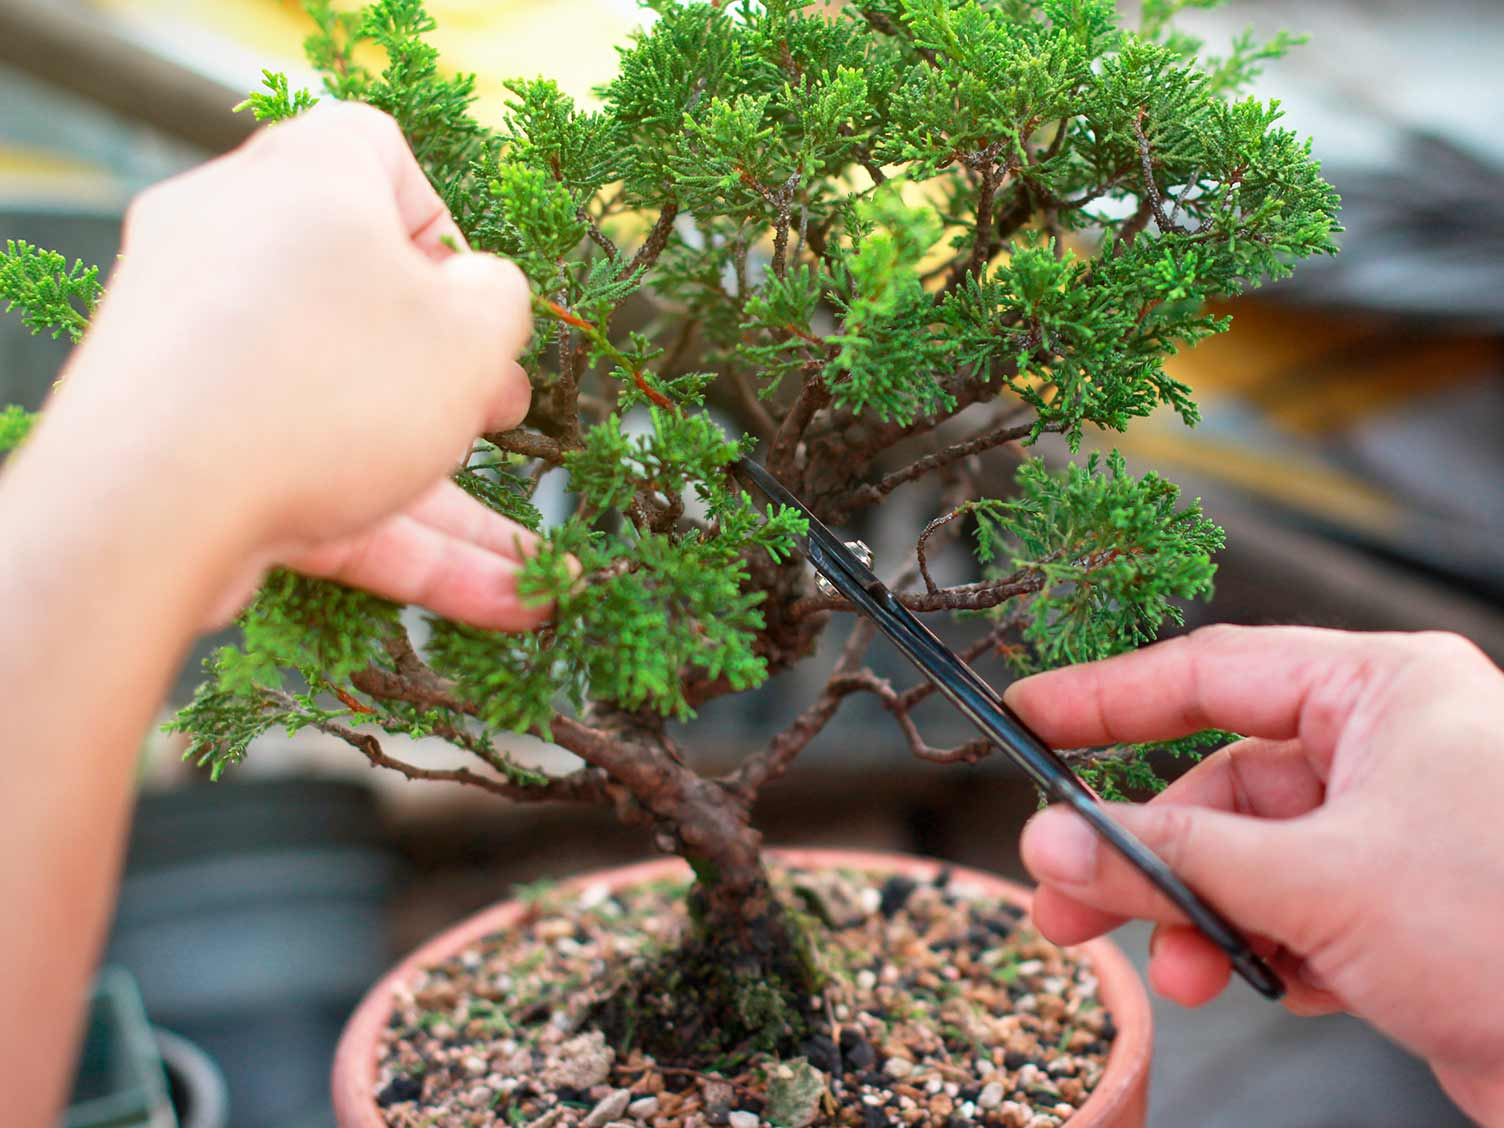 Pruning and training a bonsai tree